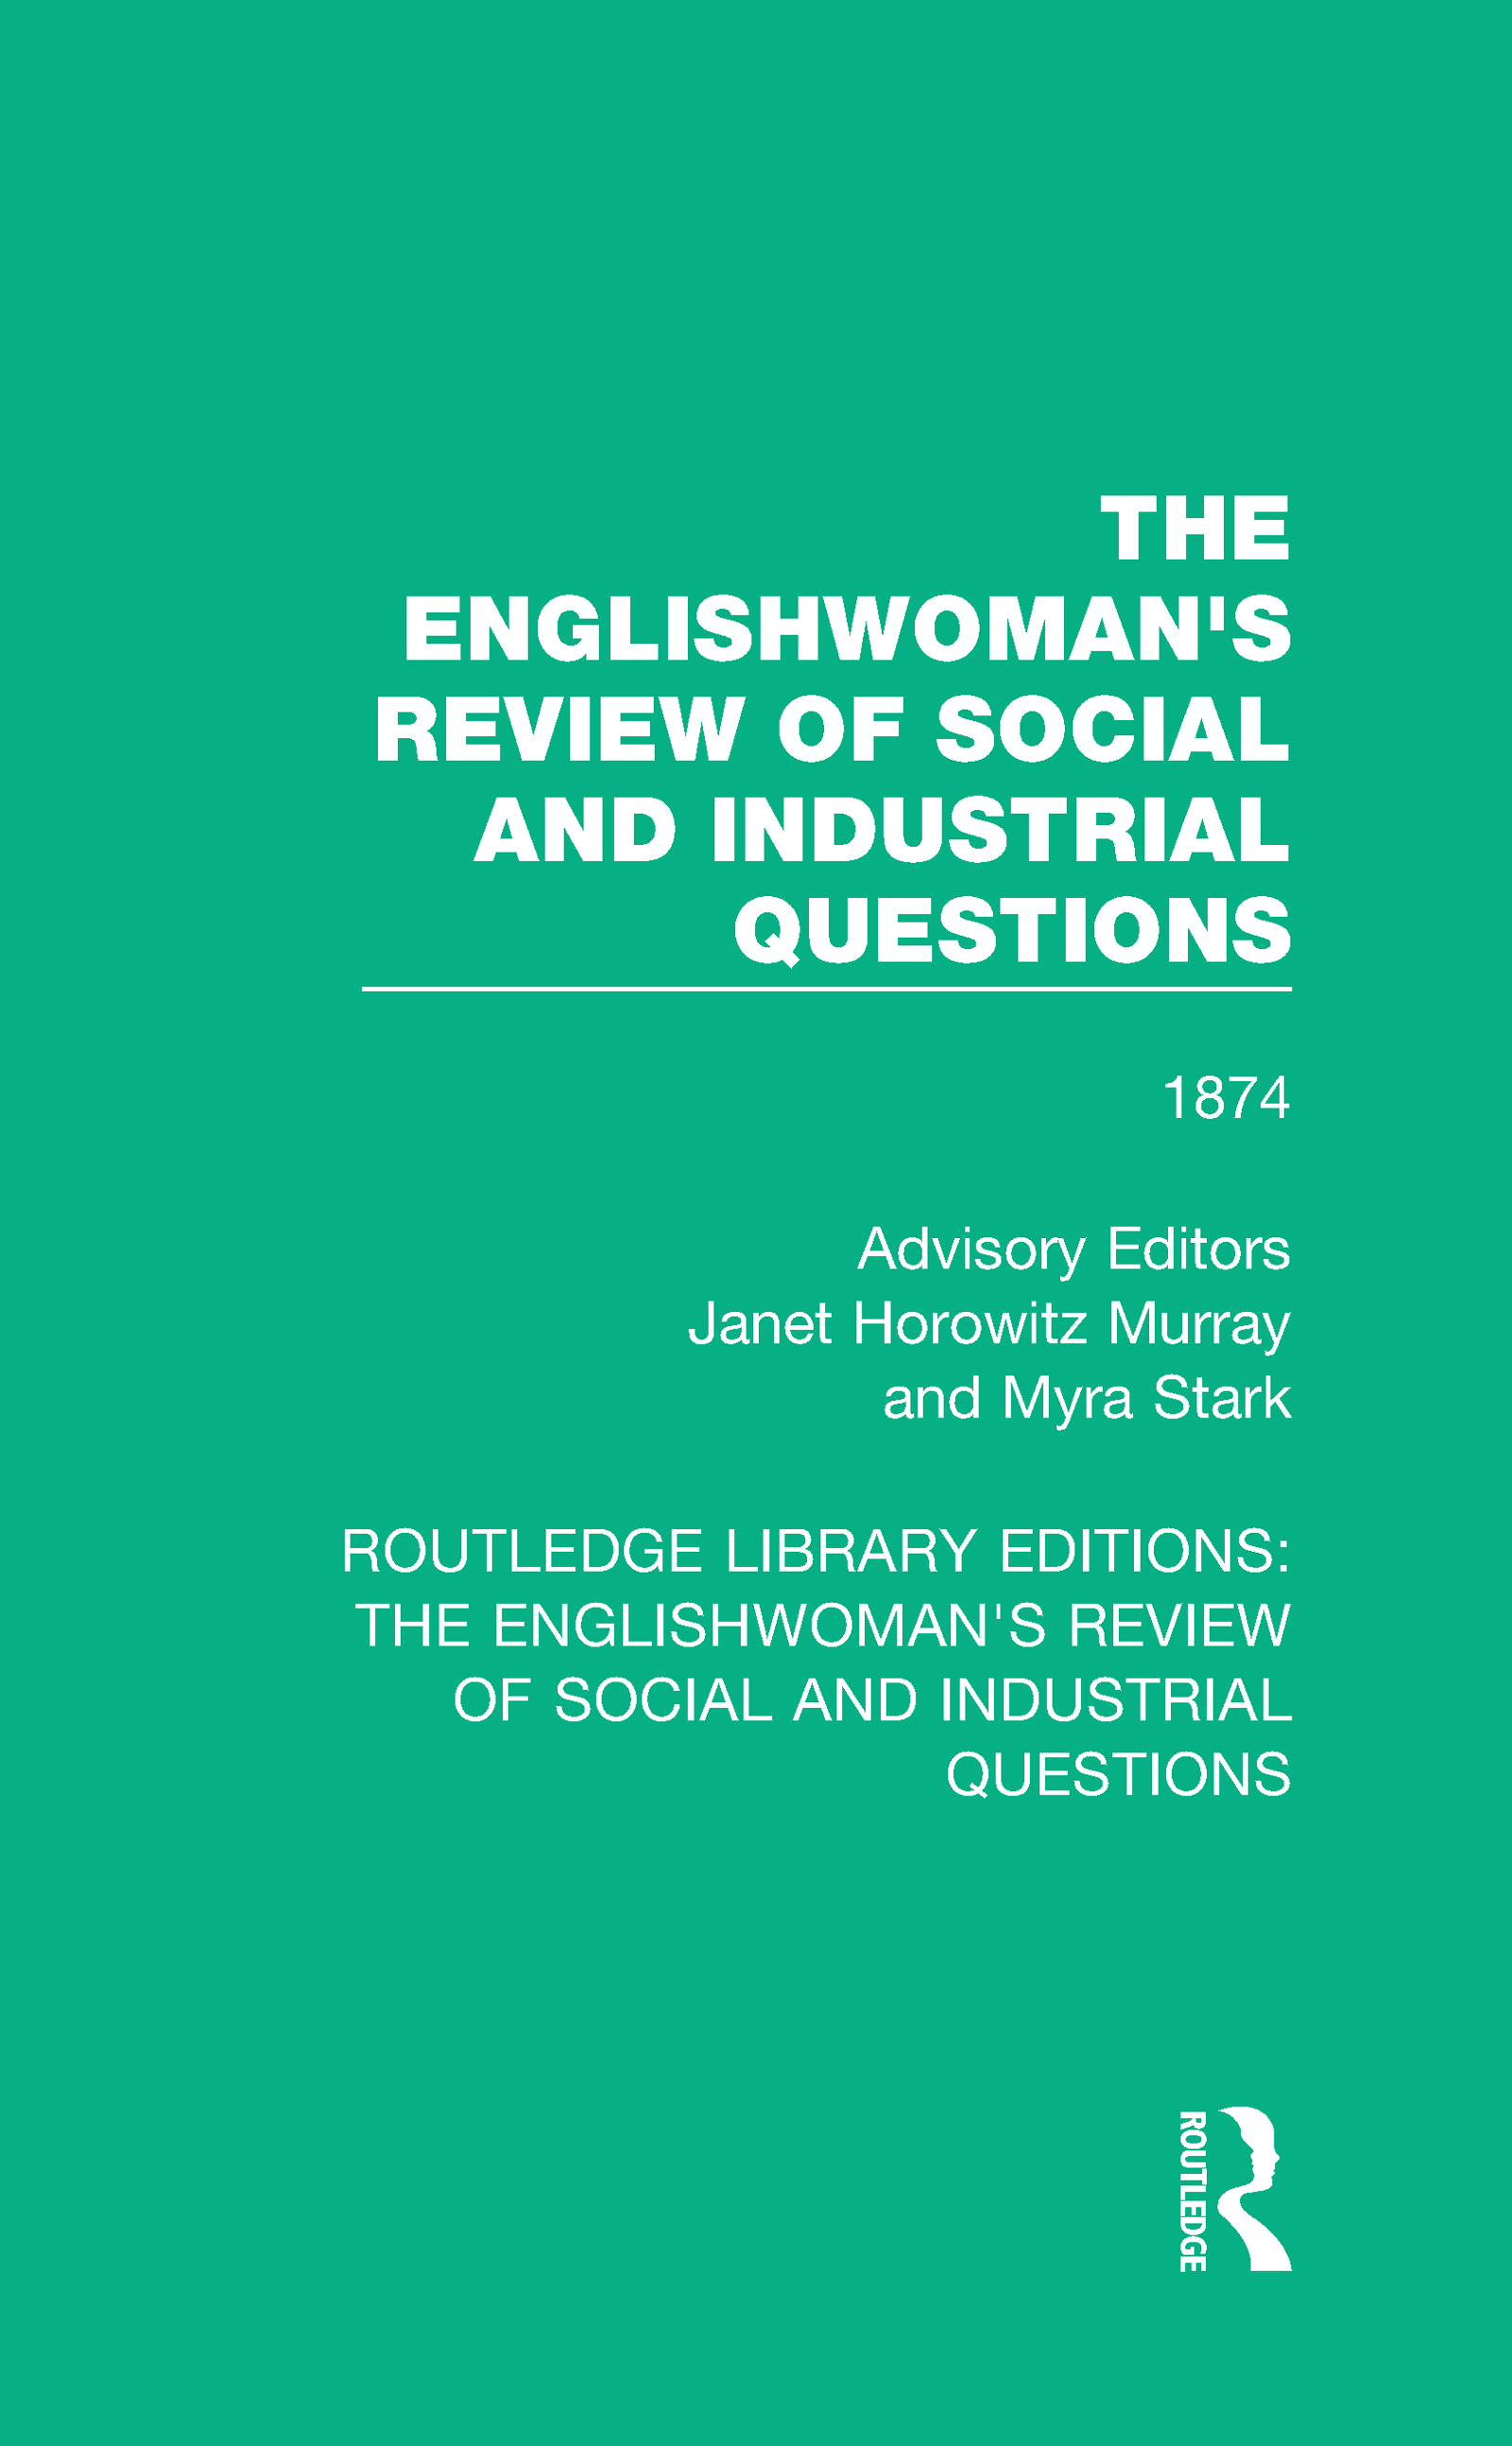 The Englishwoman's Review of Social and Industrial Questions: 1874 book cover